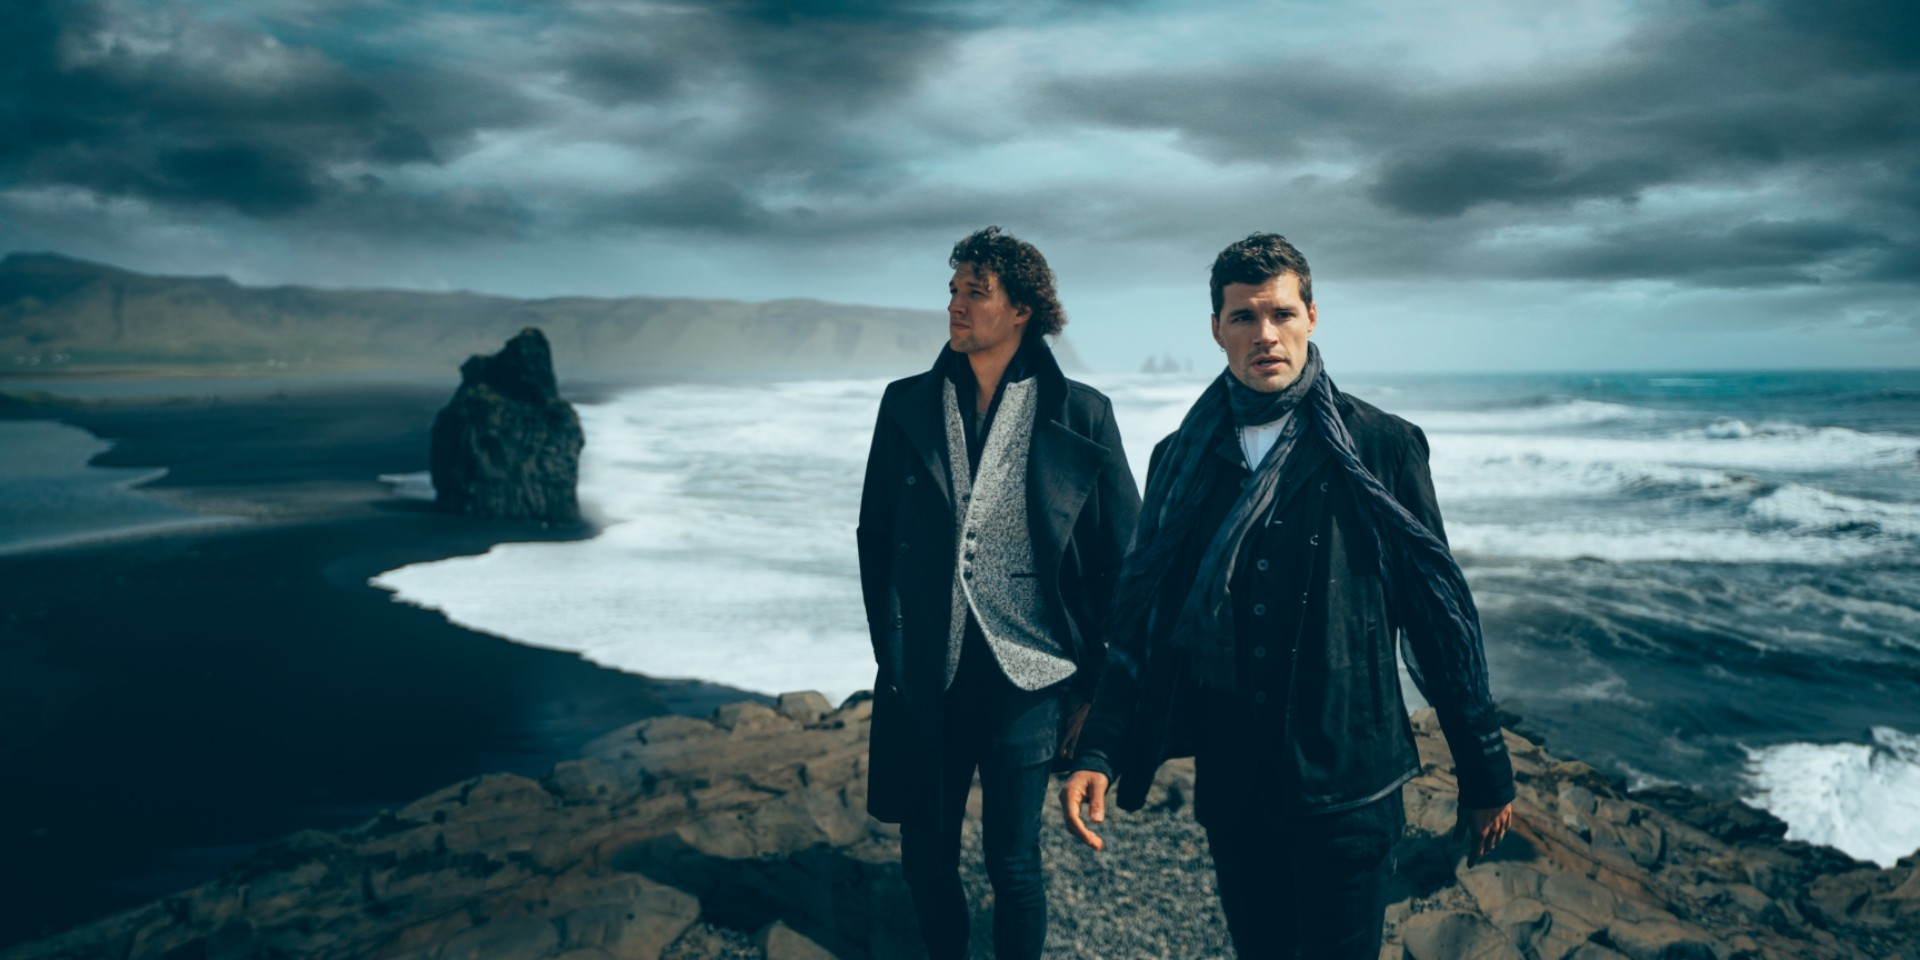 """""""Art that stands out is difficult to make"""": An interview with for KING & COUNTRY"""